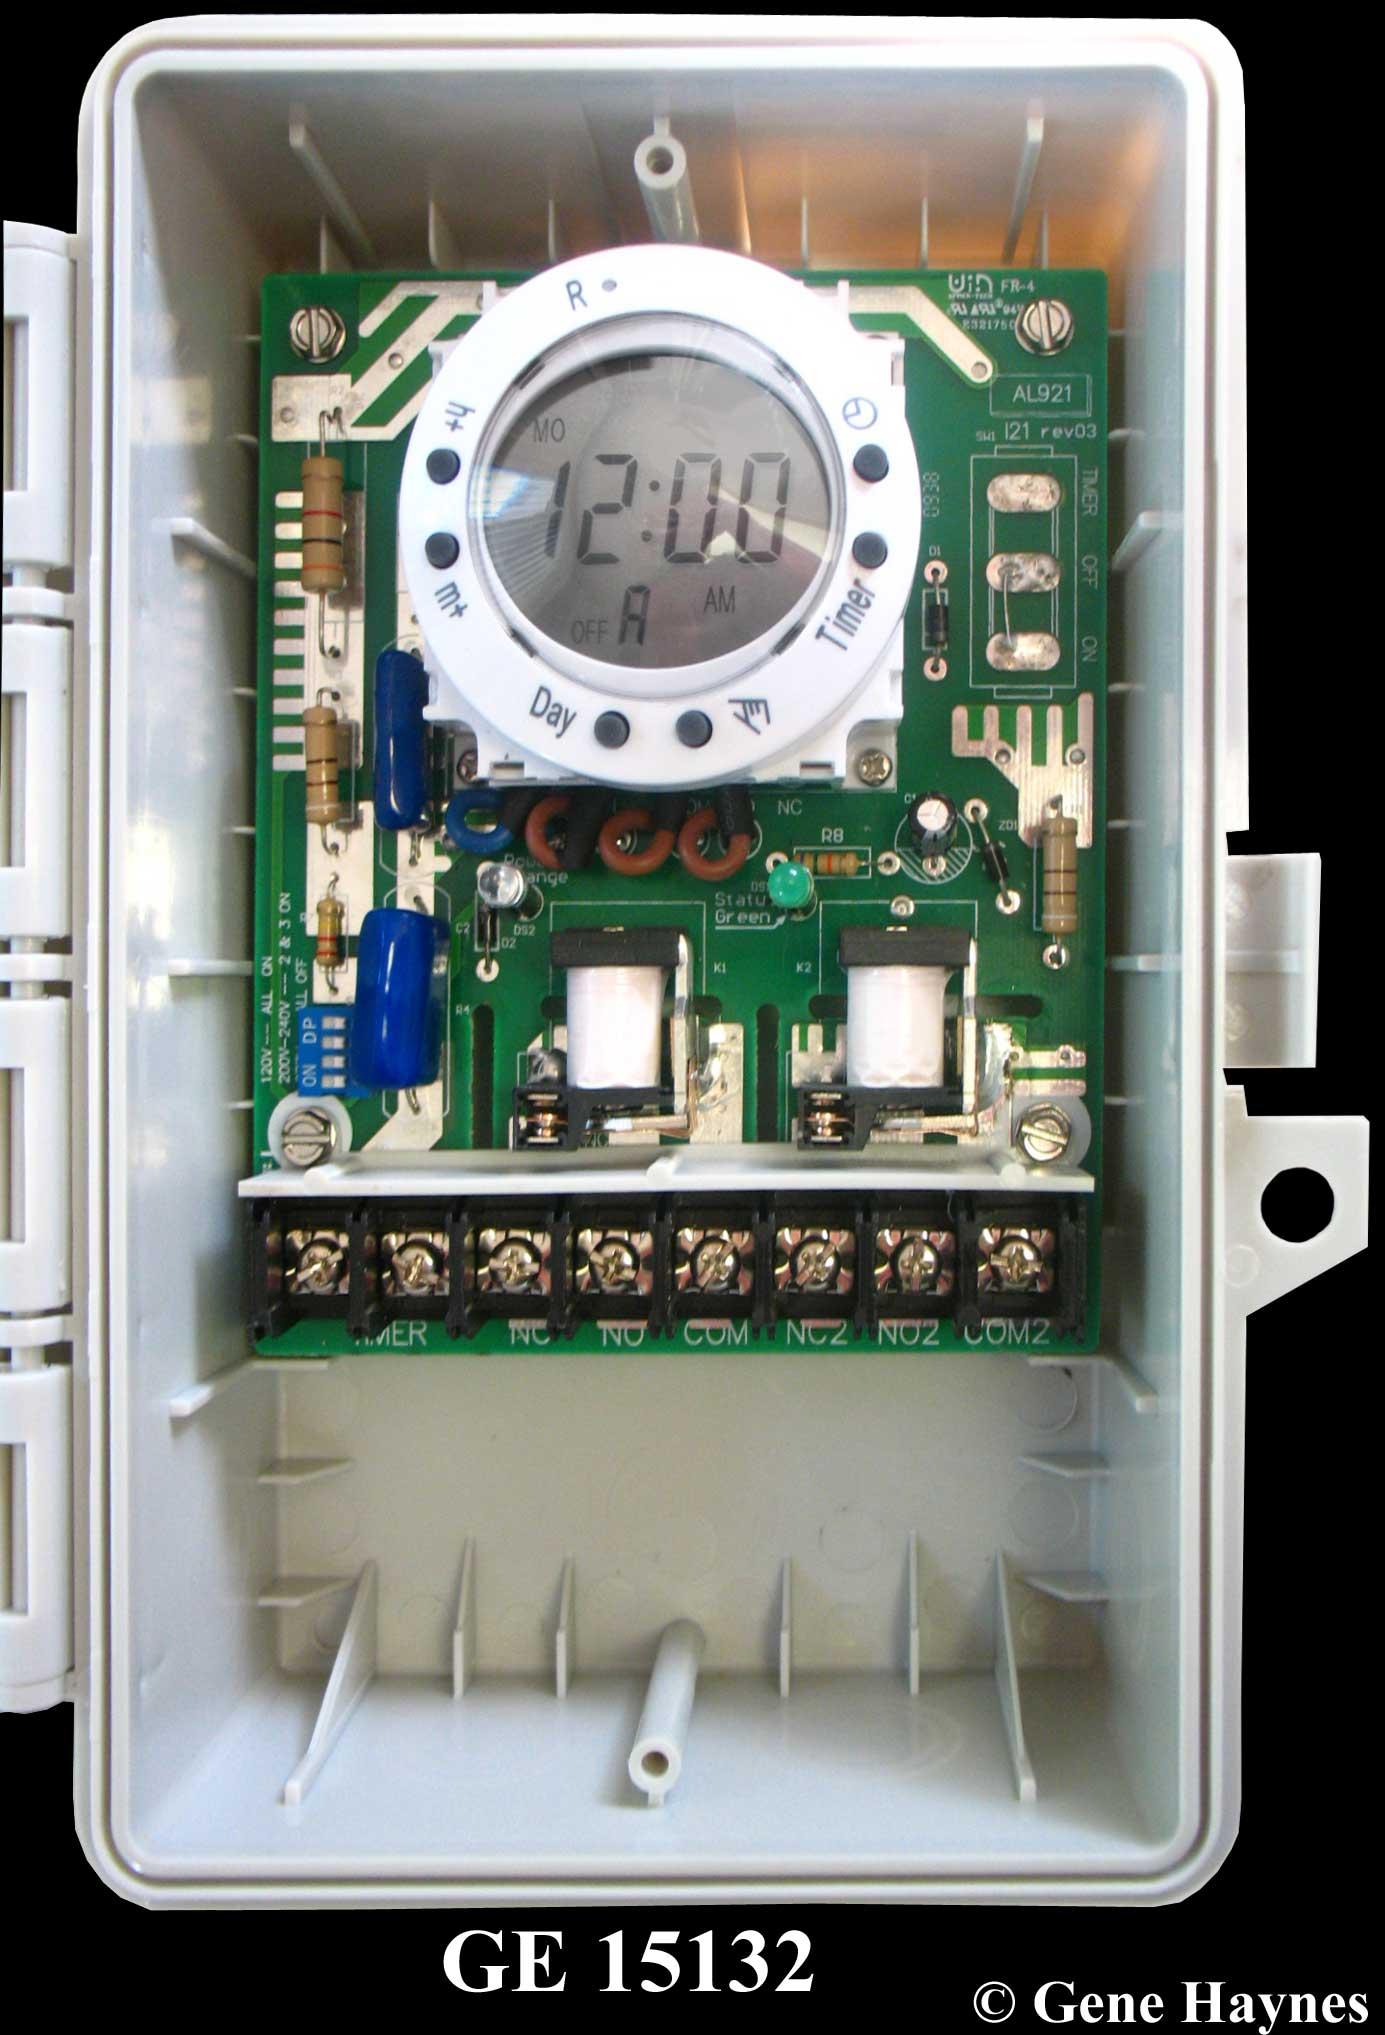 How To Wire Ge 15132 Timer Programmable Digital Circuit See Large Image Close Up